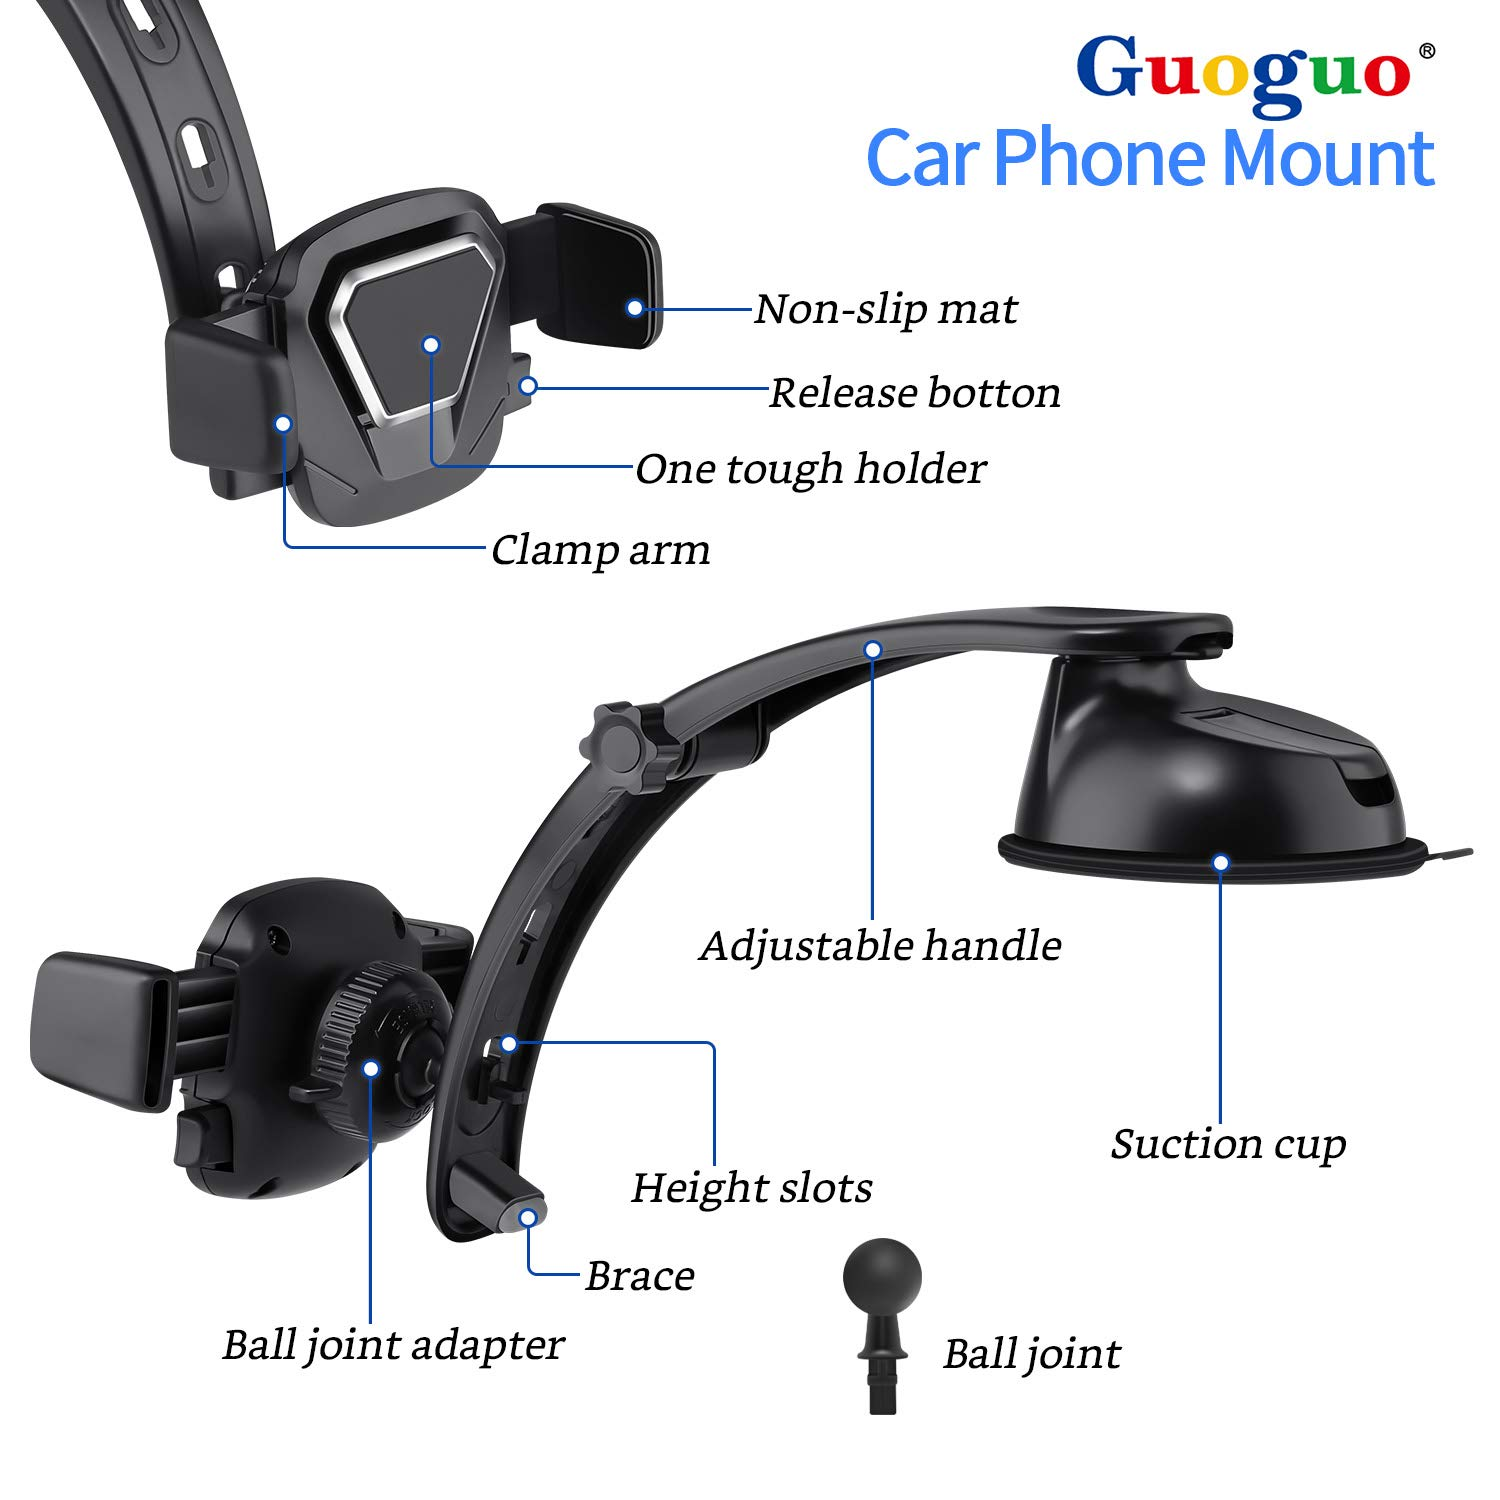 Car Phone Mount, Guoguo Automotive Car Phone Holder for Samsung Galaxy S10/S9/S8/S9+/S8+/Note9/Note8,iPhone X/Xs/Max/XR/8 and Other Smartphones